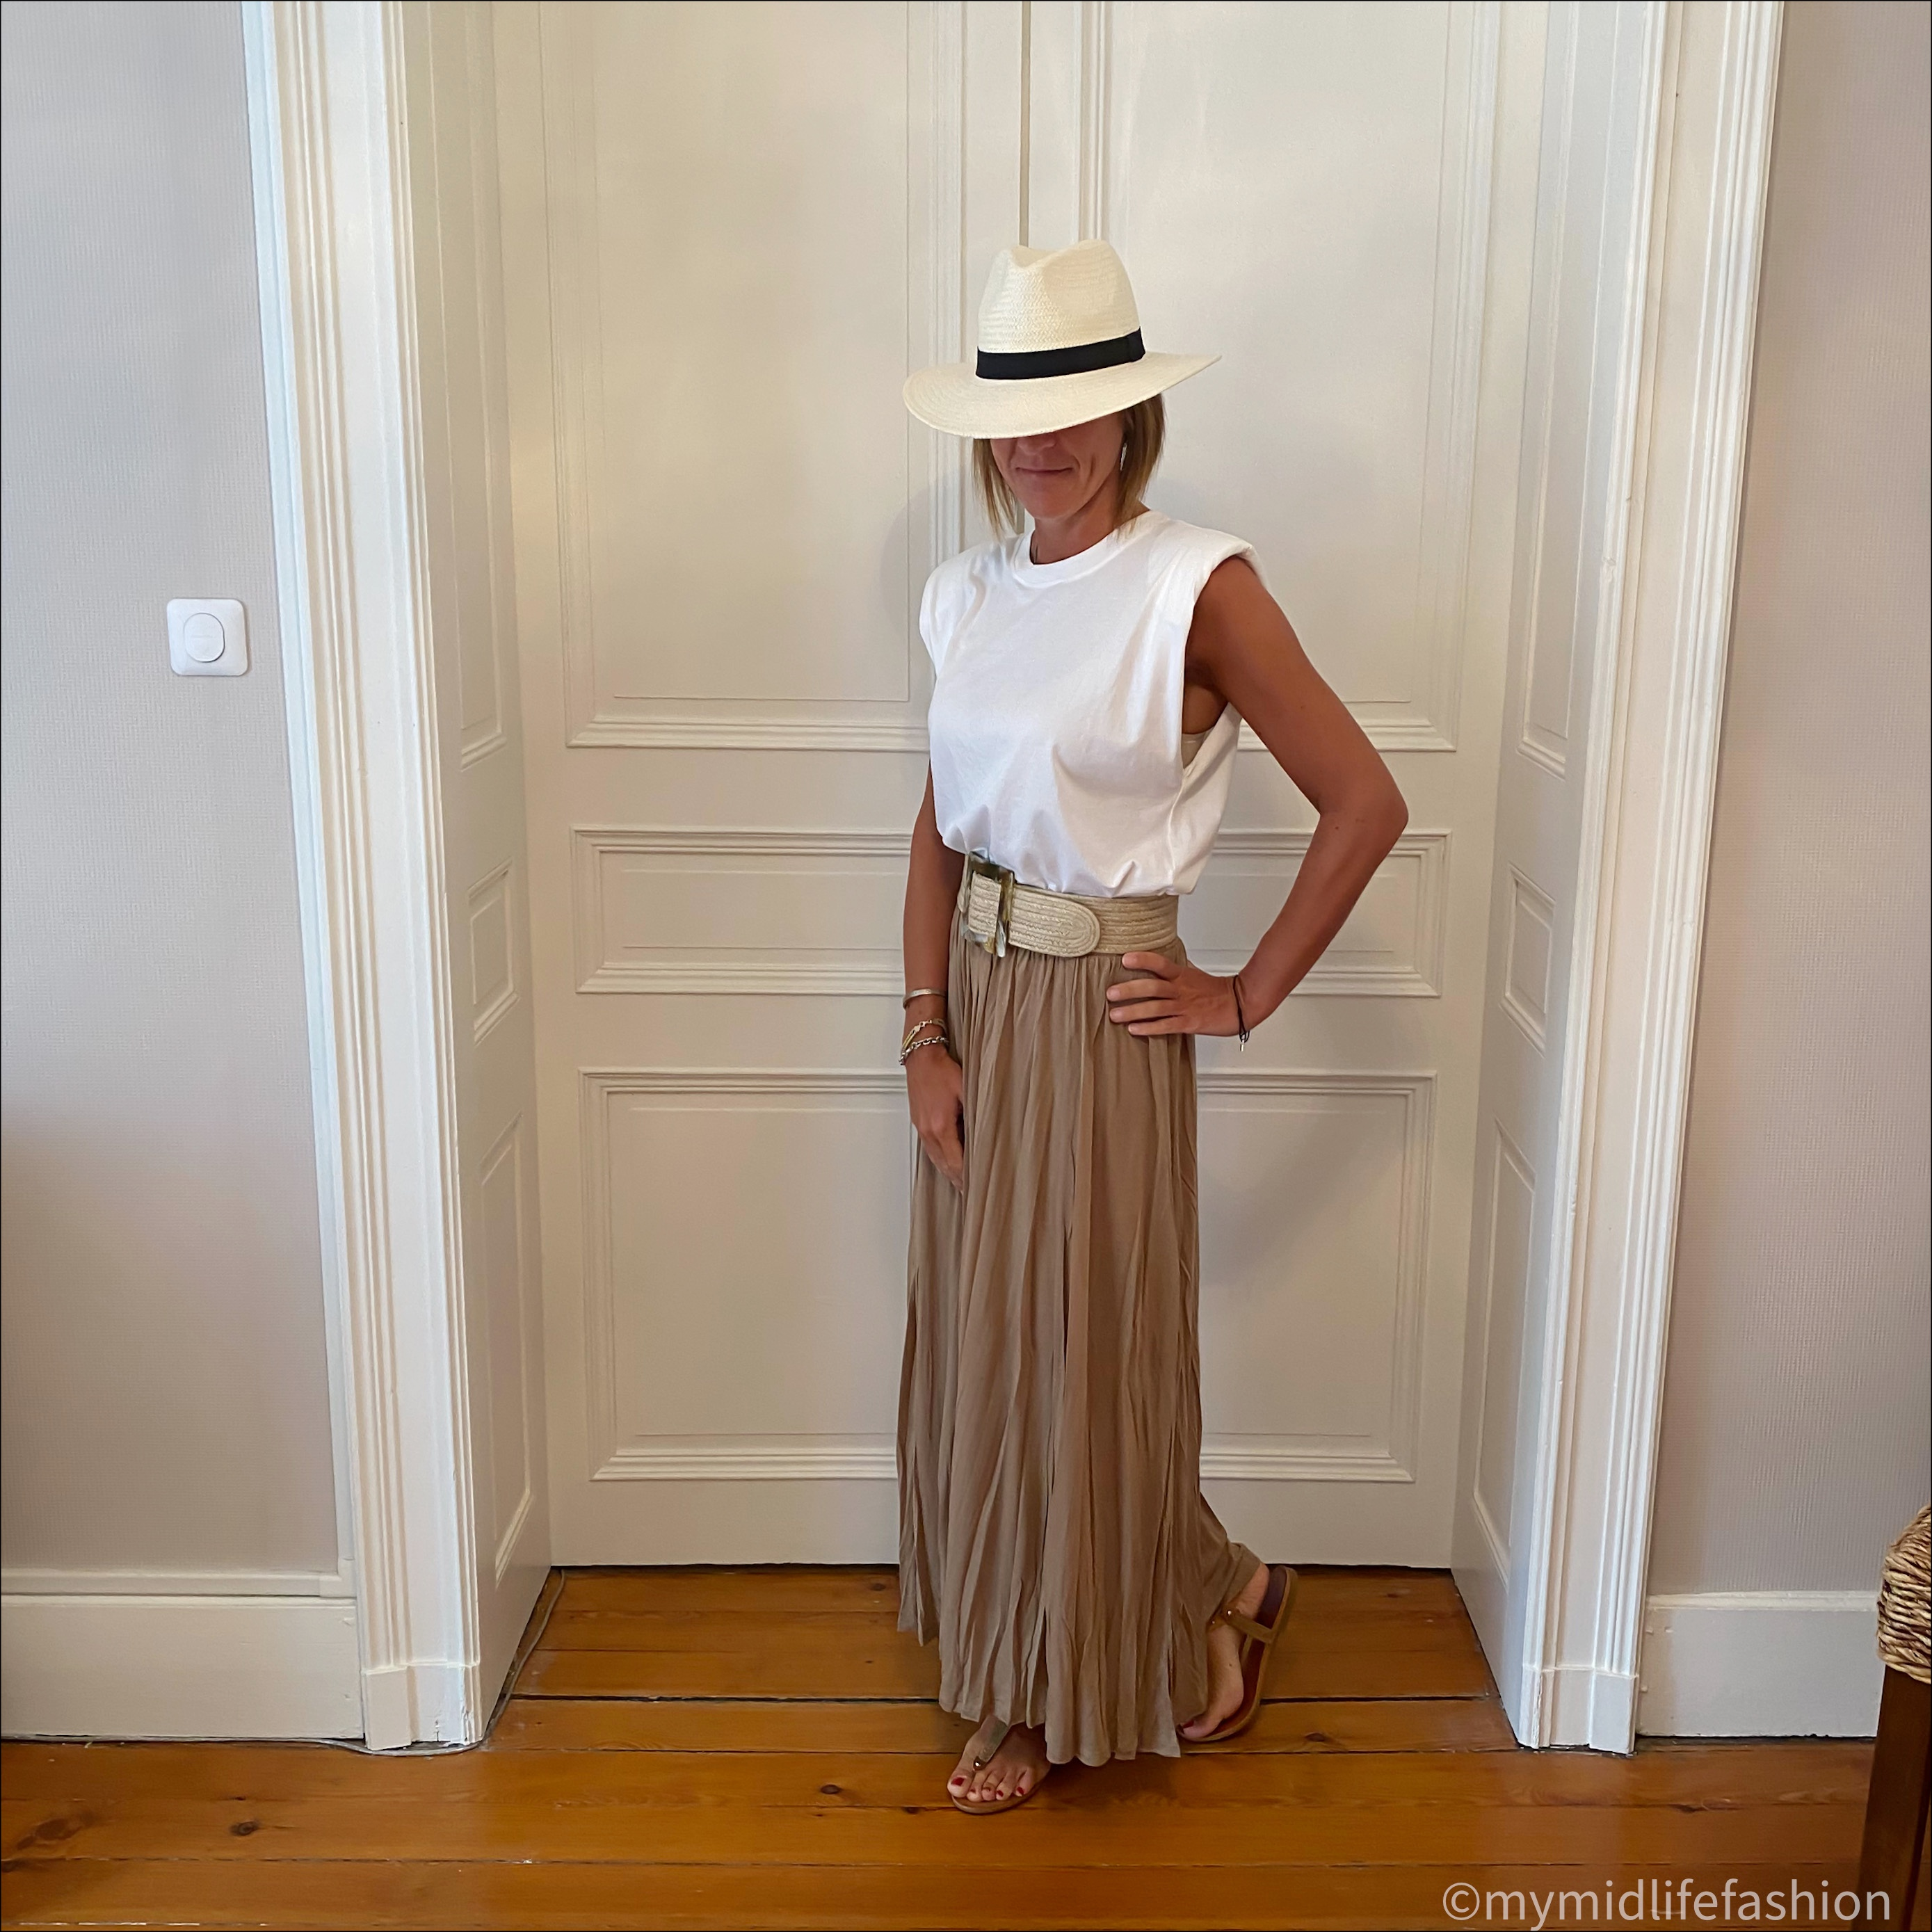 my midlife fashion, zara Panama hat, zara t-shirt with pads, zara woven belt, h and ma lyocell skirt, Carvela leather thong sandals